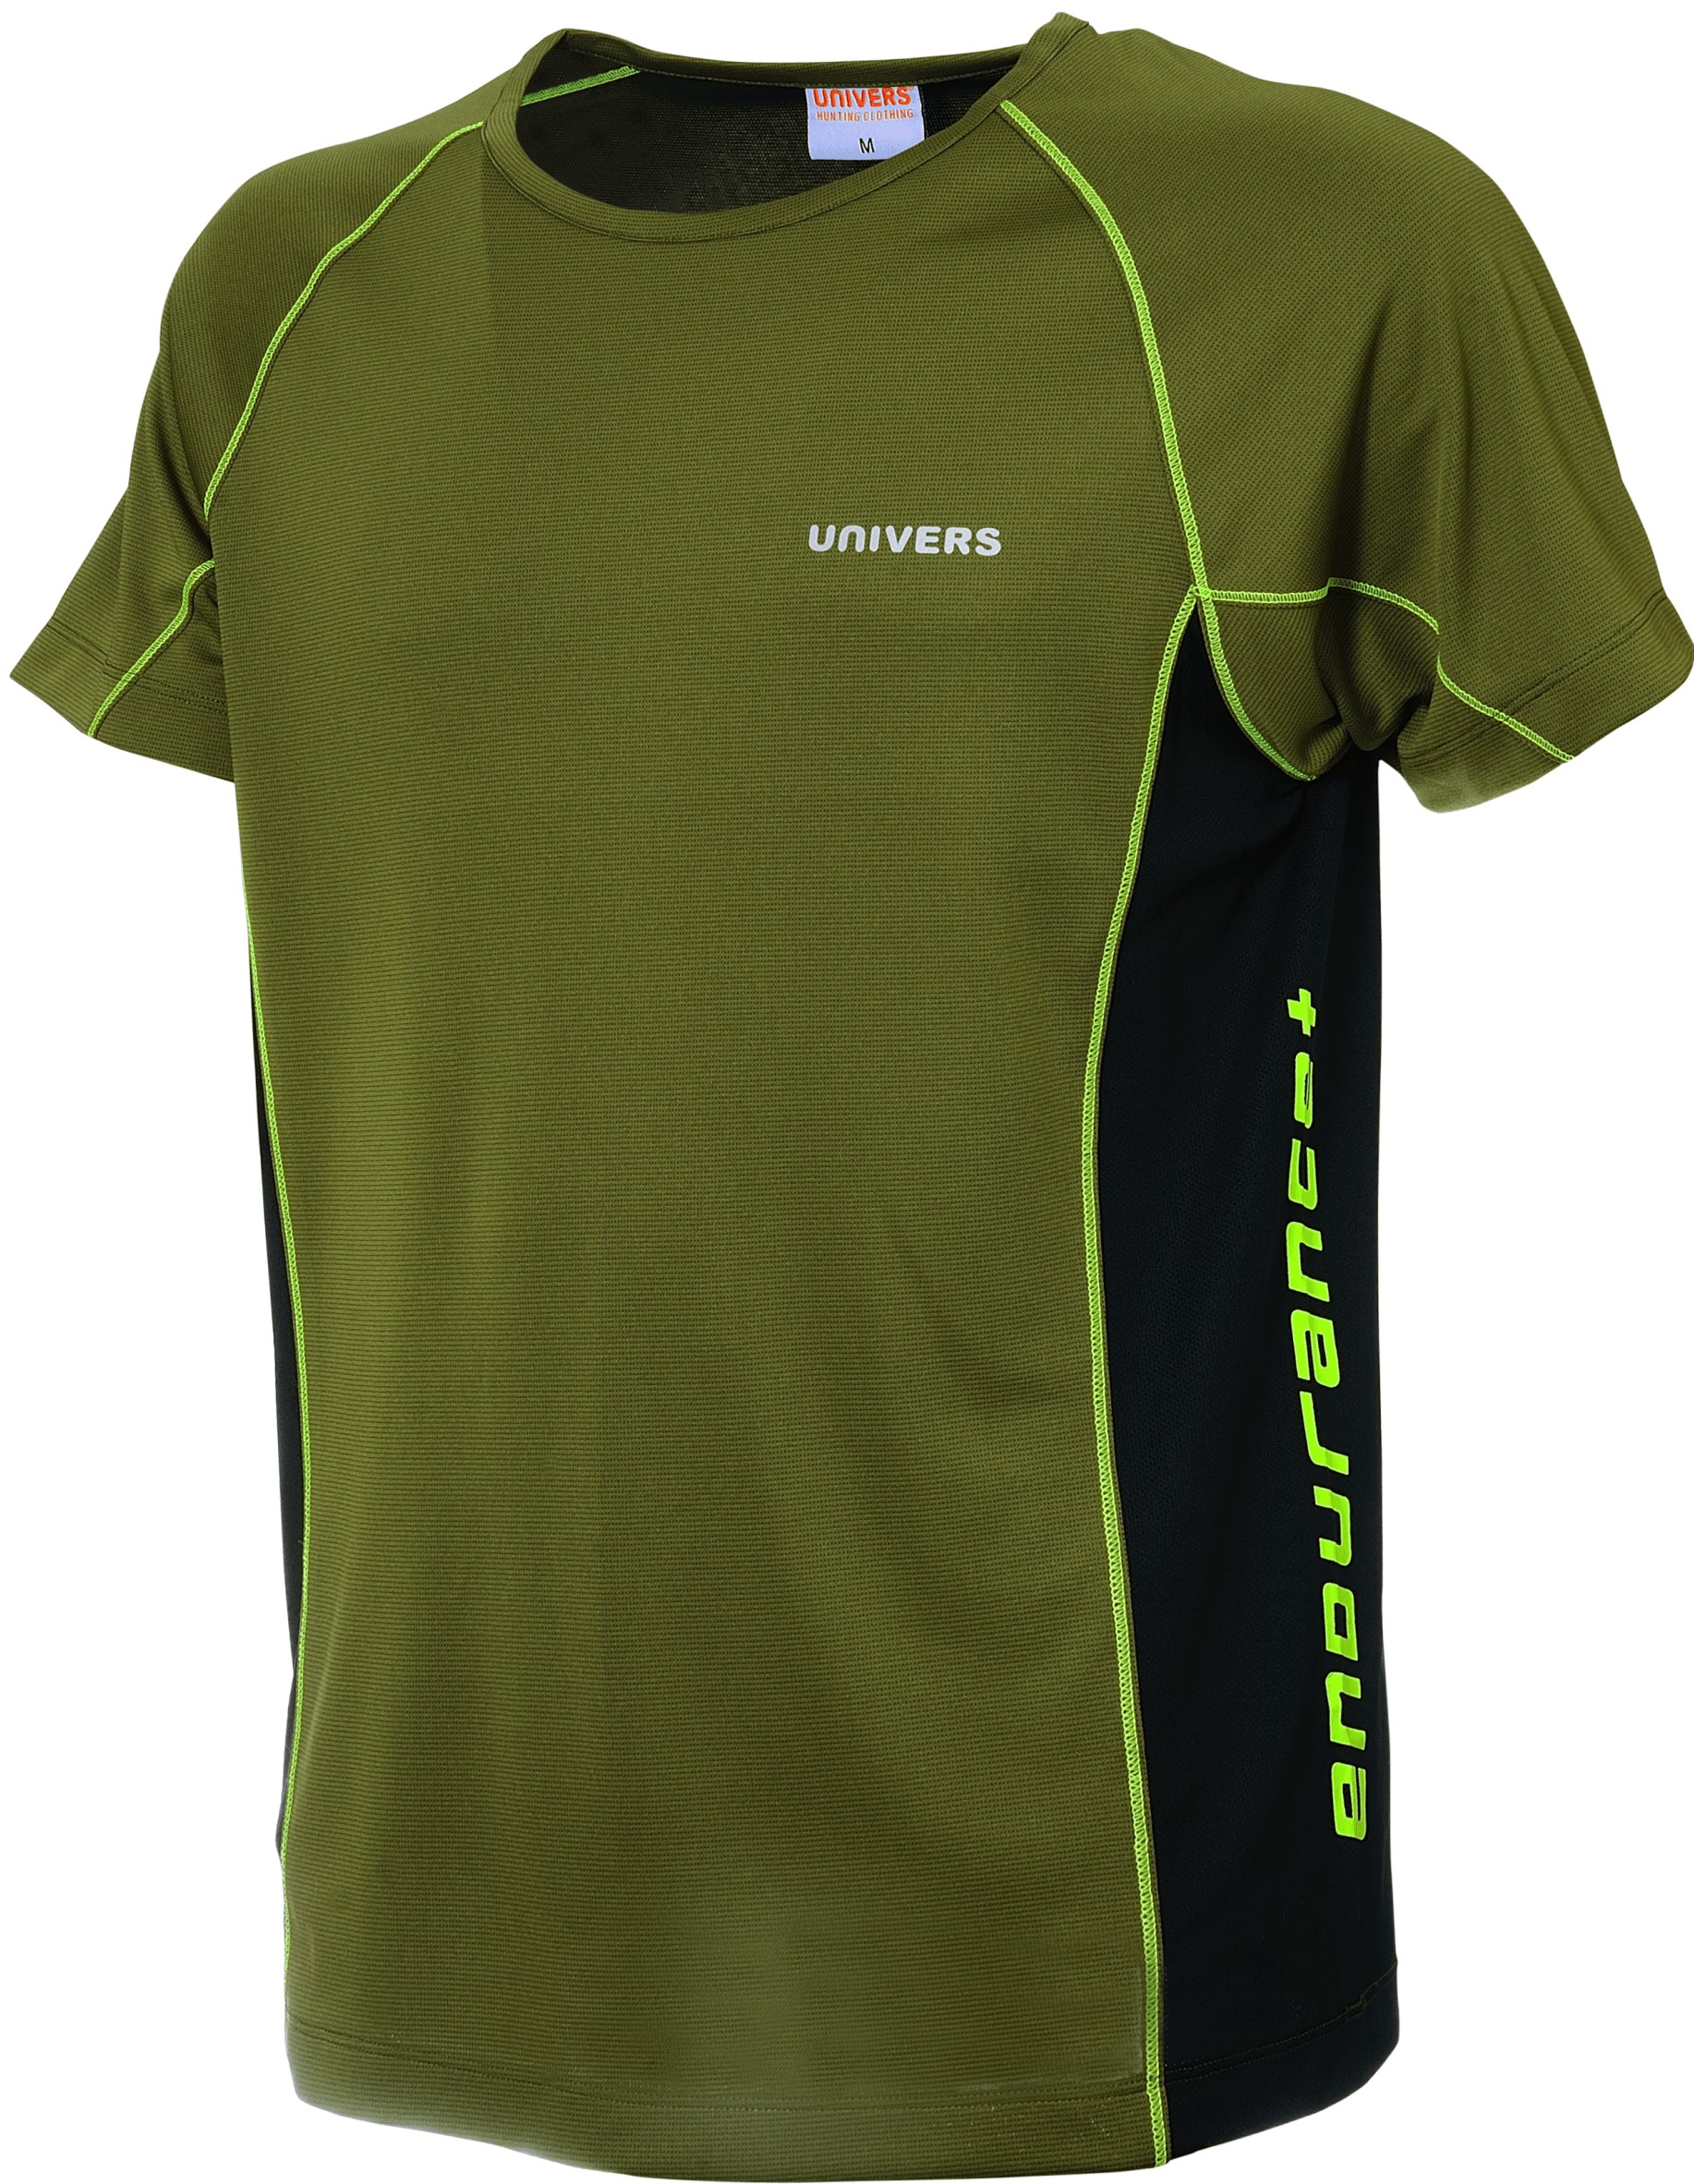 Univers PRACTICAL T-SHIRT 94002 / 400